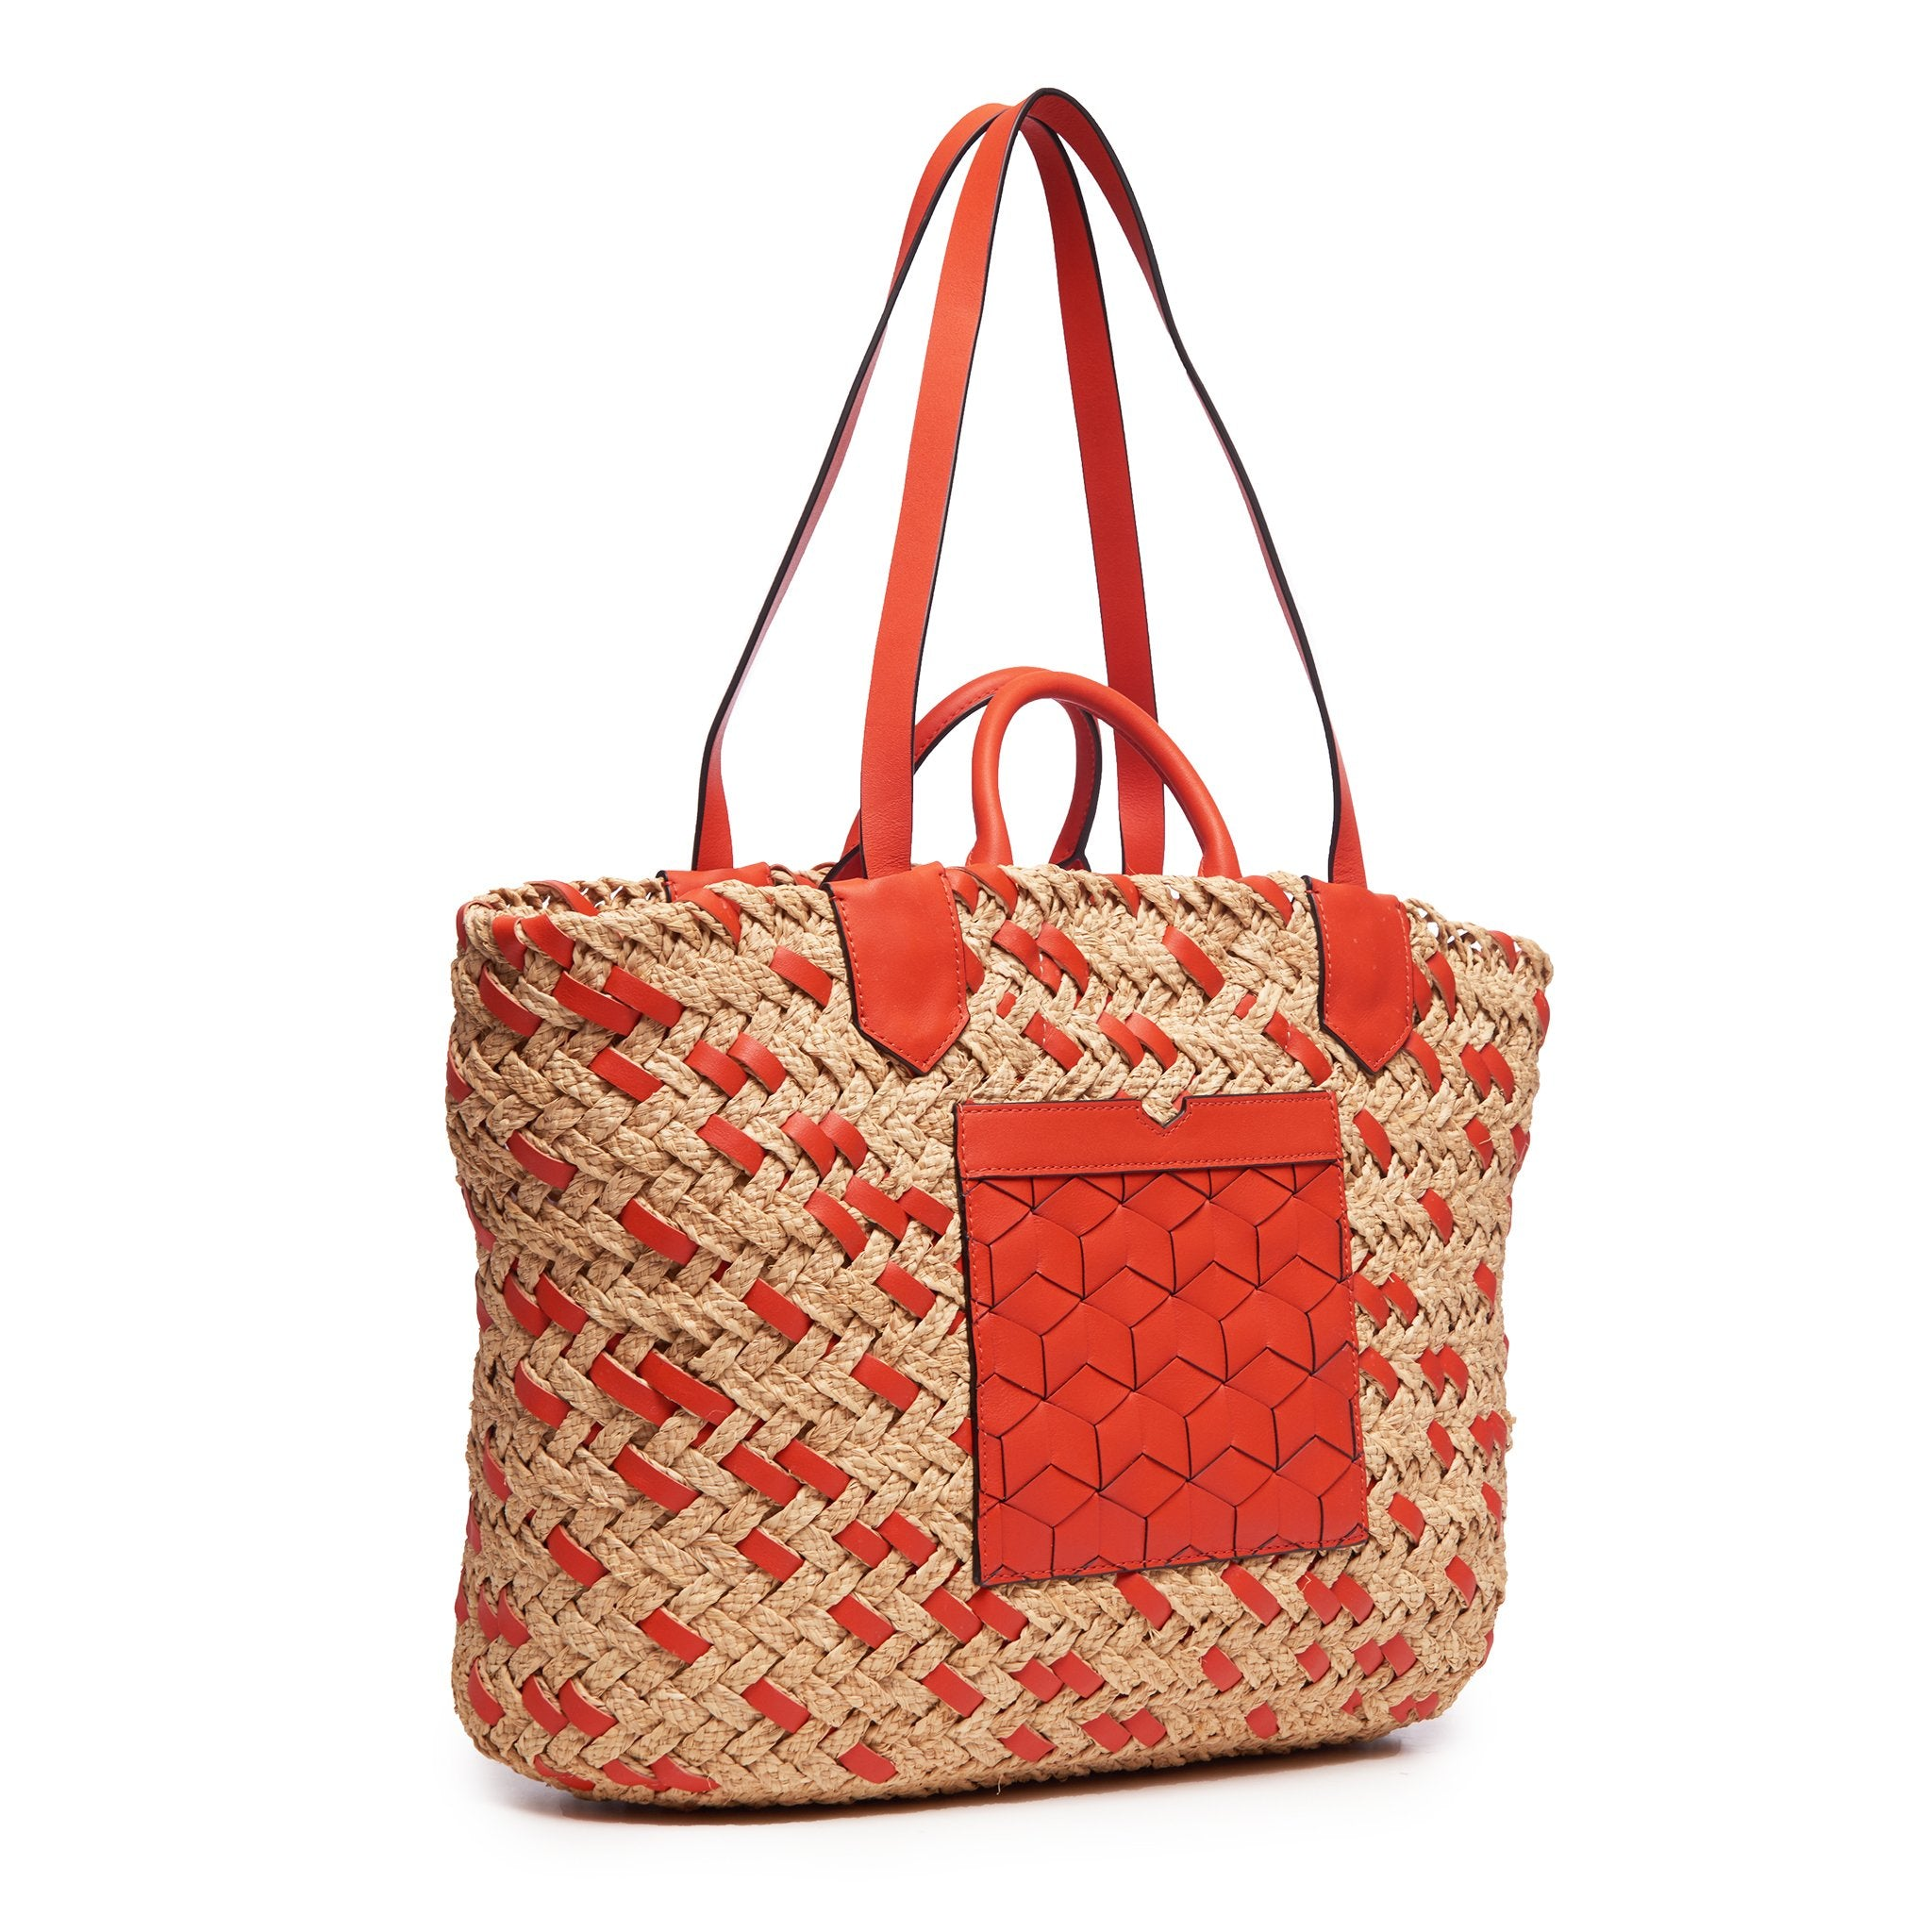 Plage Tote